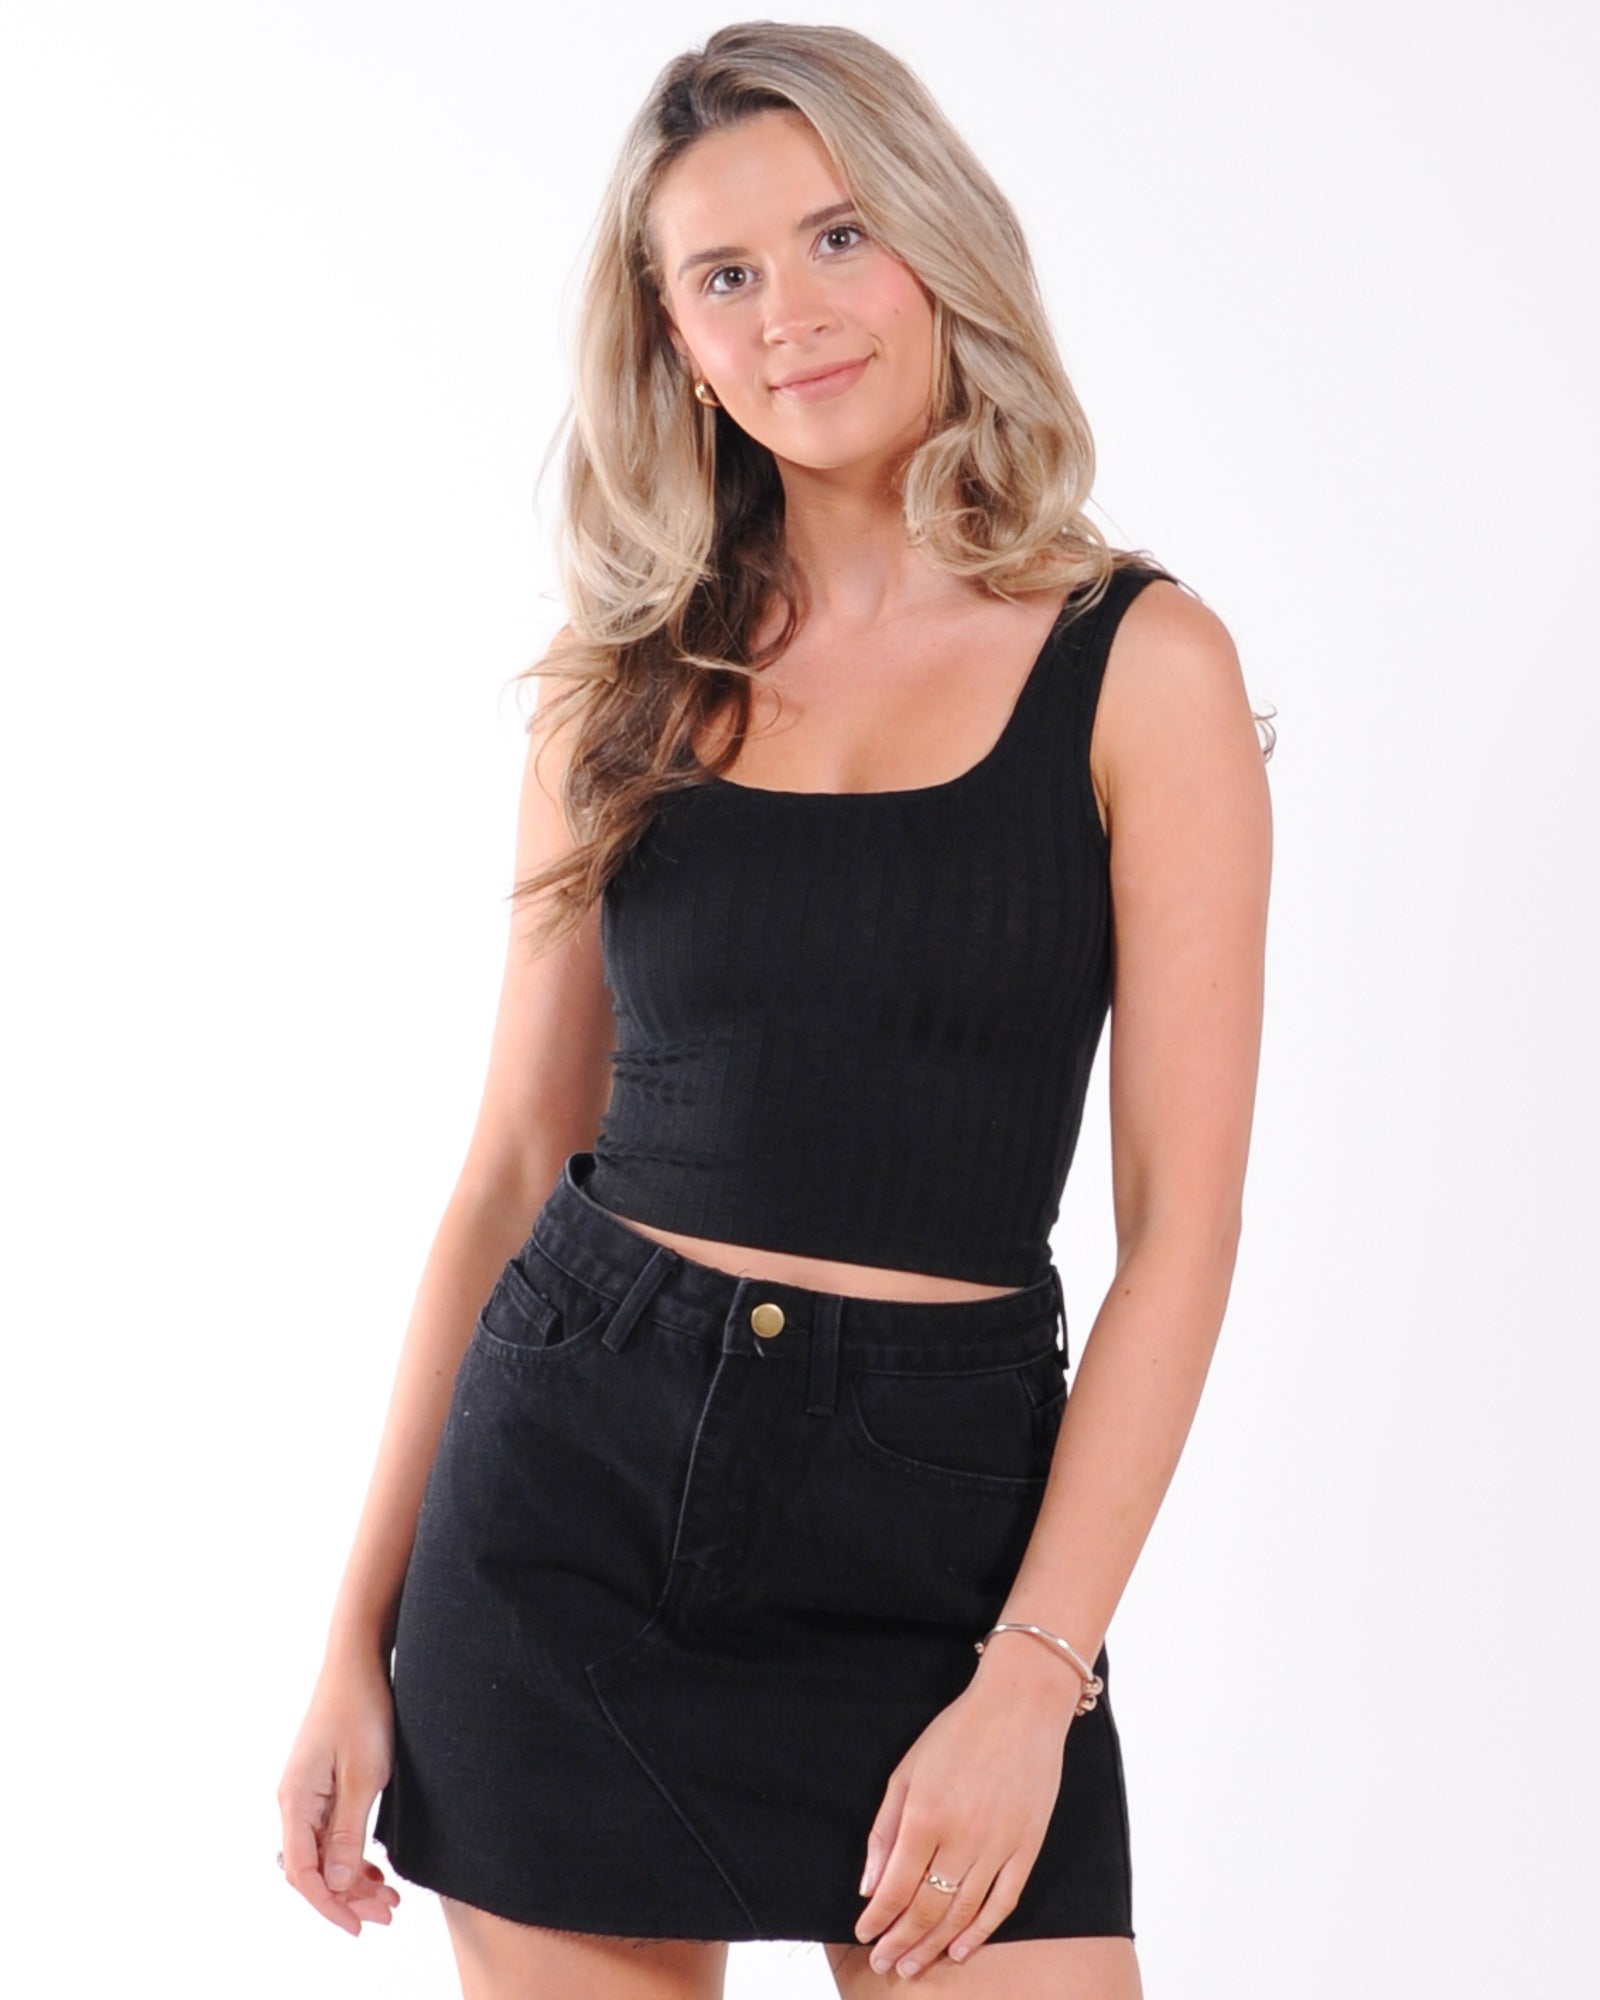 All About Eve Revival Square Neck Tank - Black